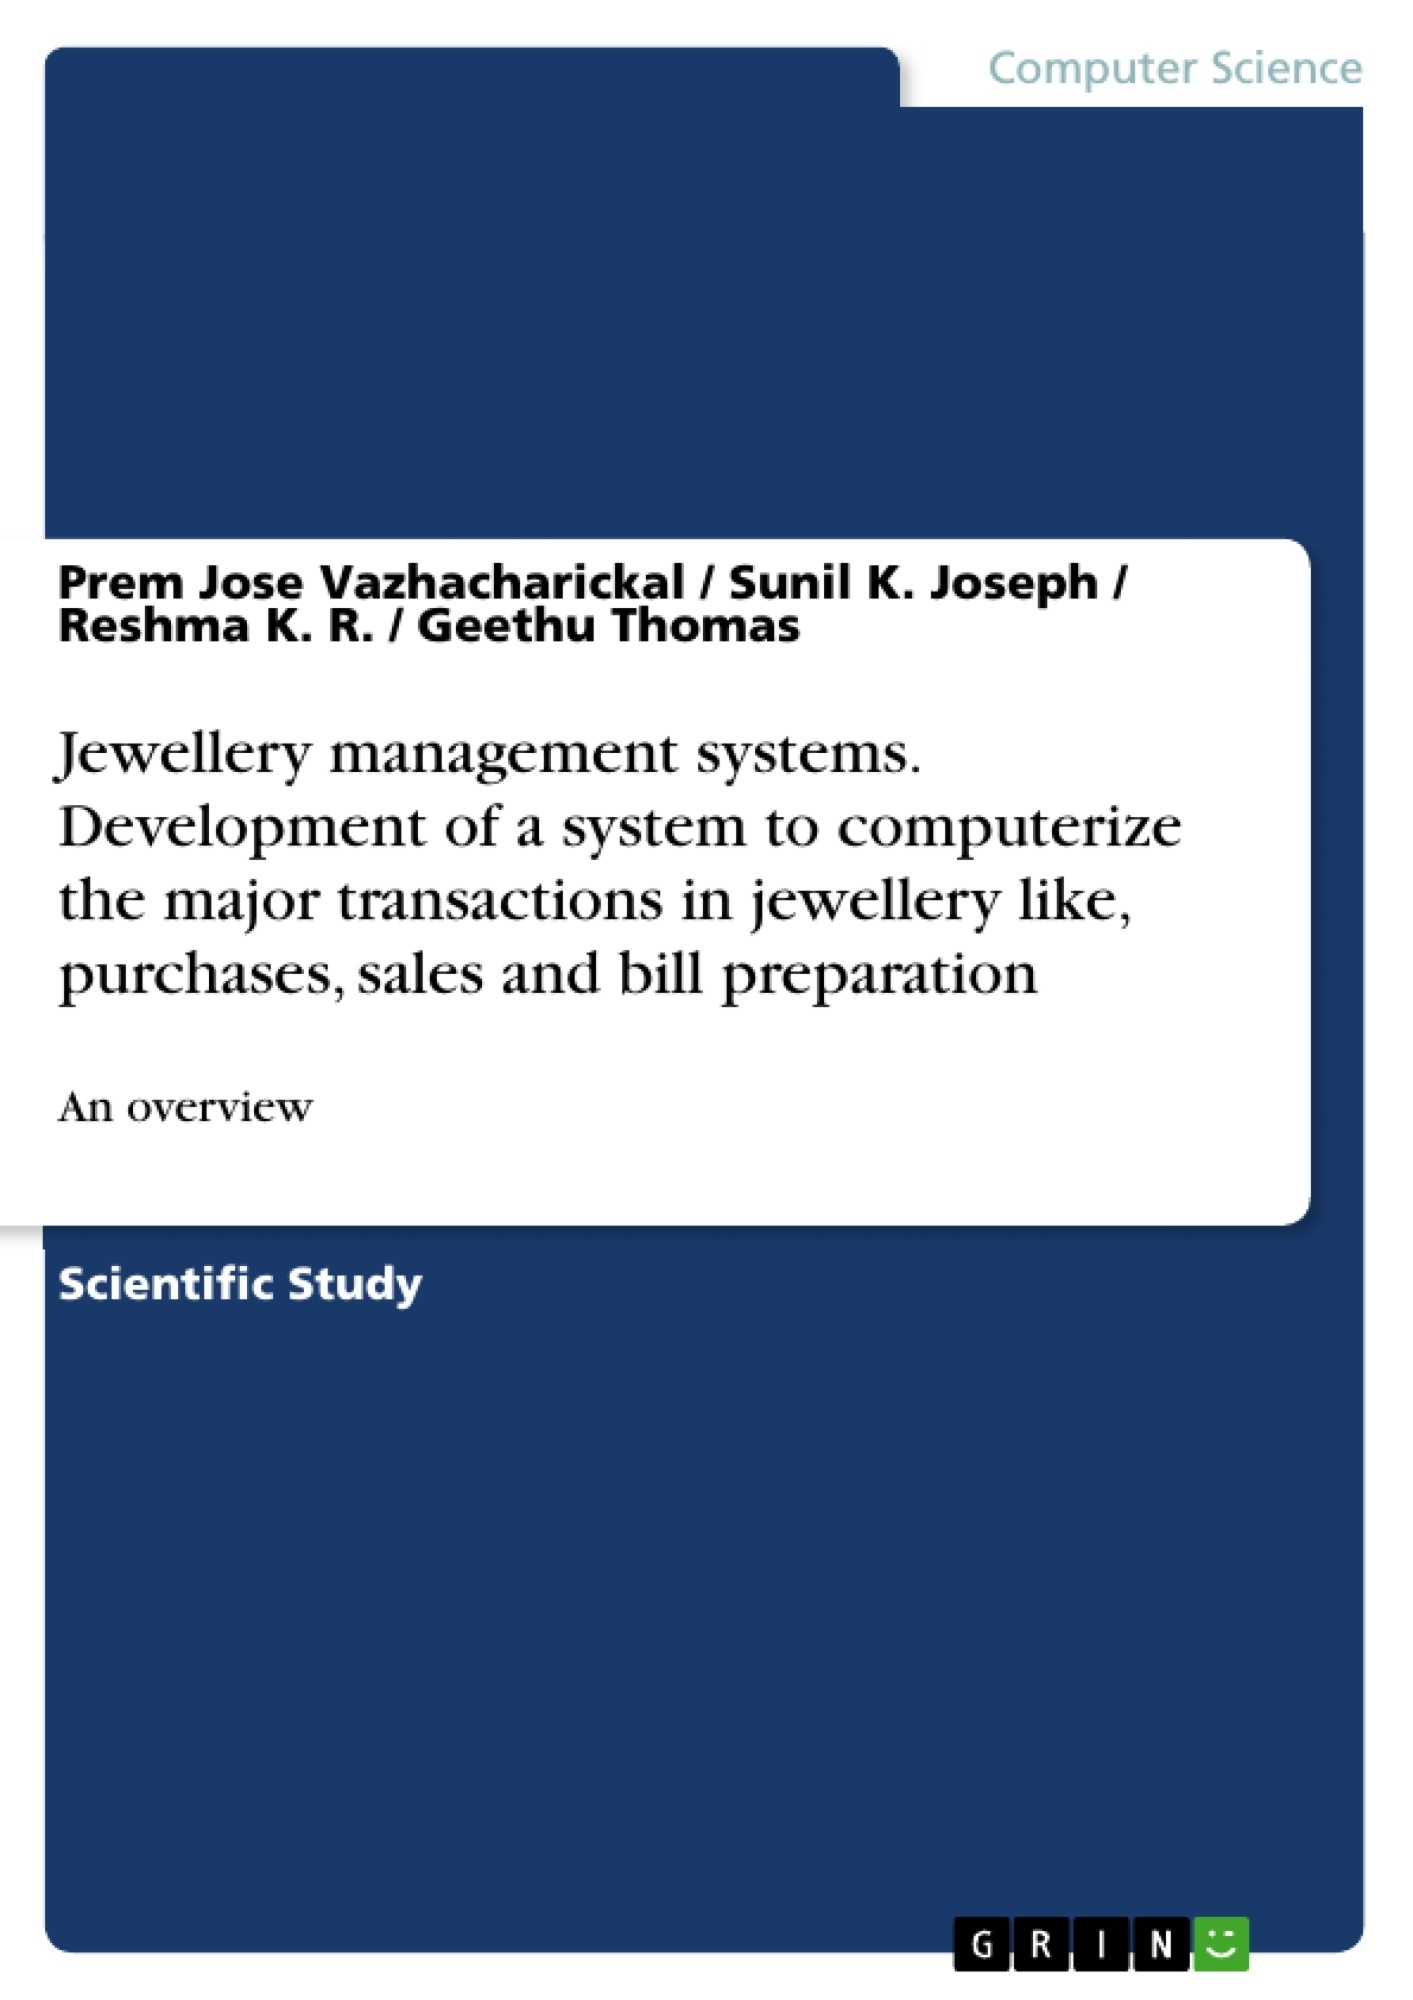 GRIN - Jewellery management systems  Development of a system to computerize  the major transactions in jewellery like, purchases, sales and bill